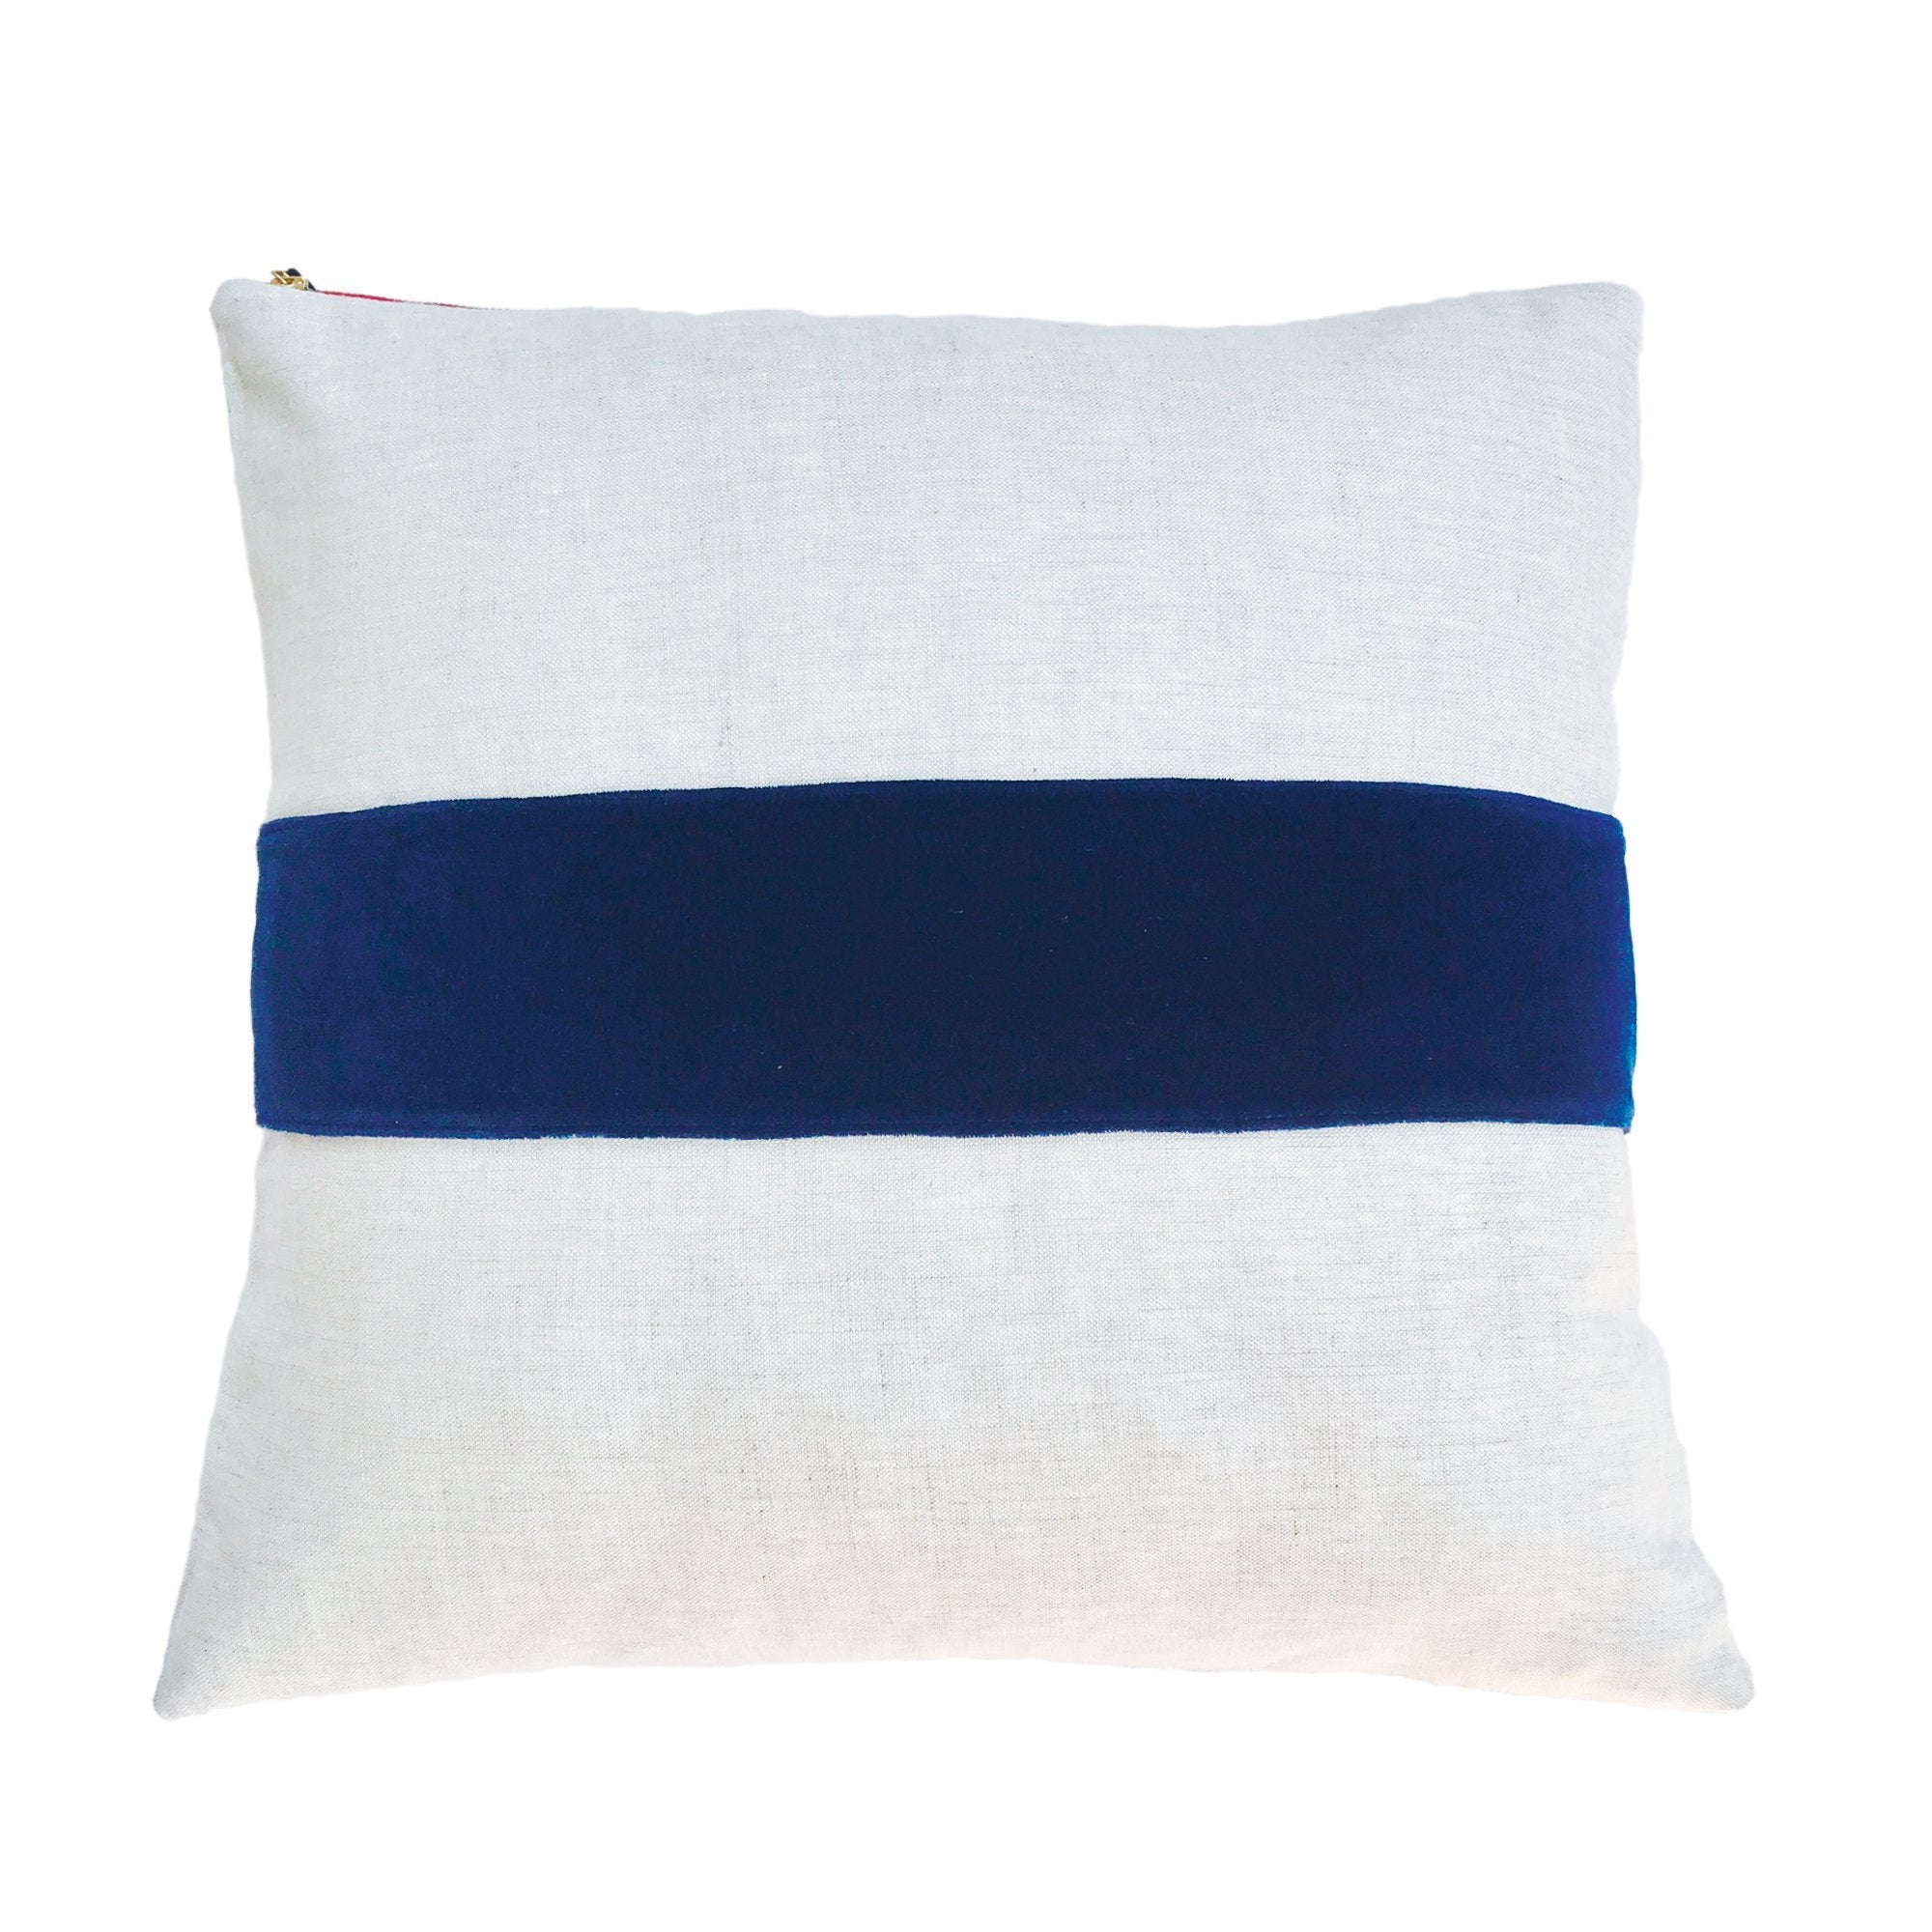 NAVY VELVET BAND LINEN PILLOW COVER